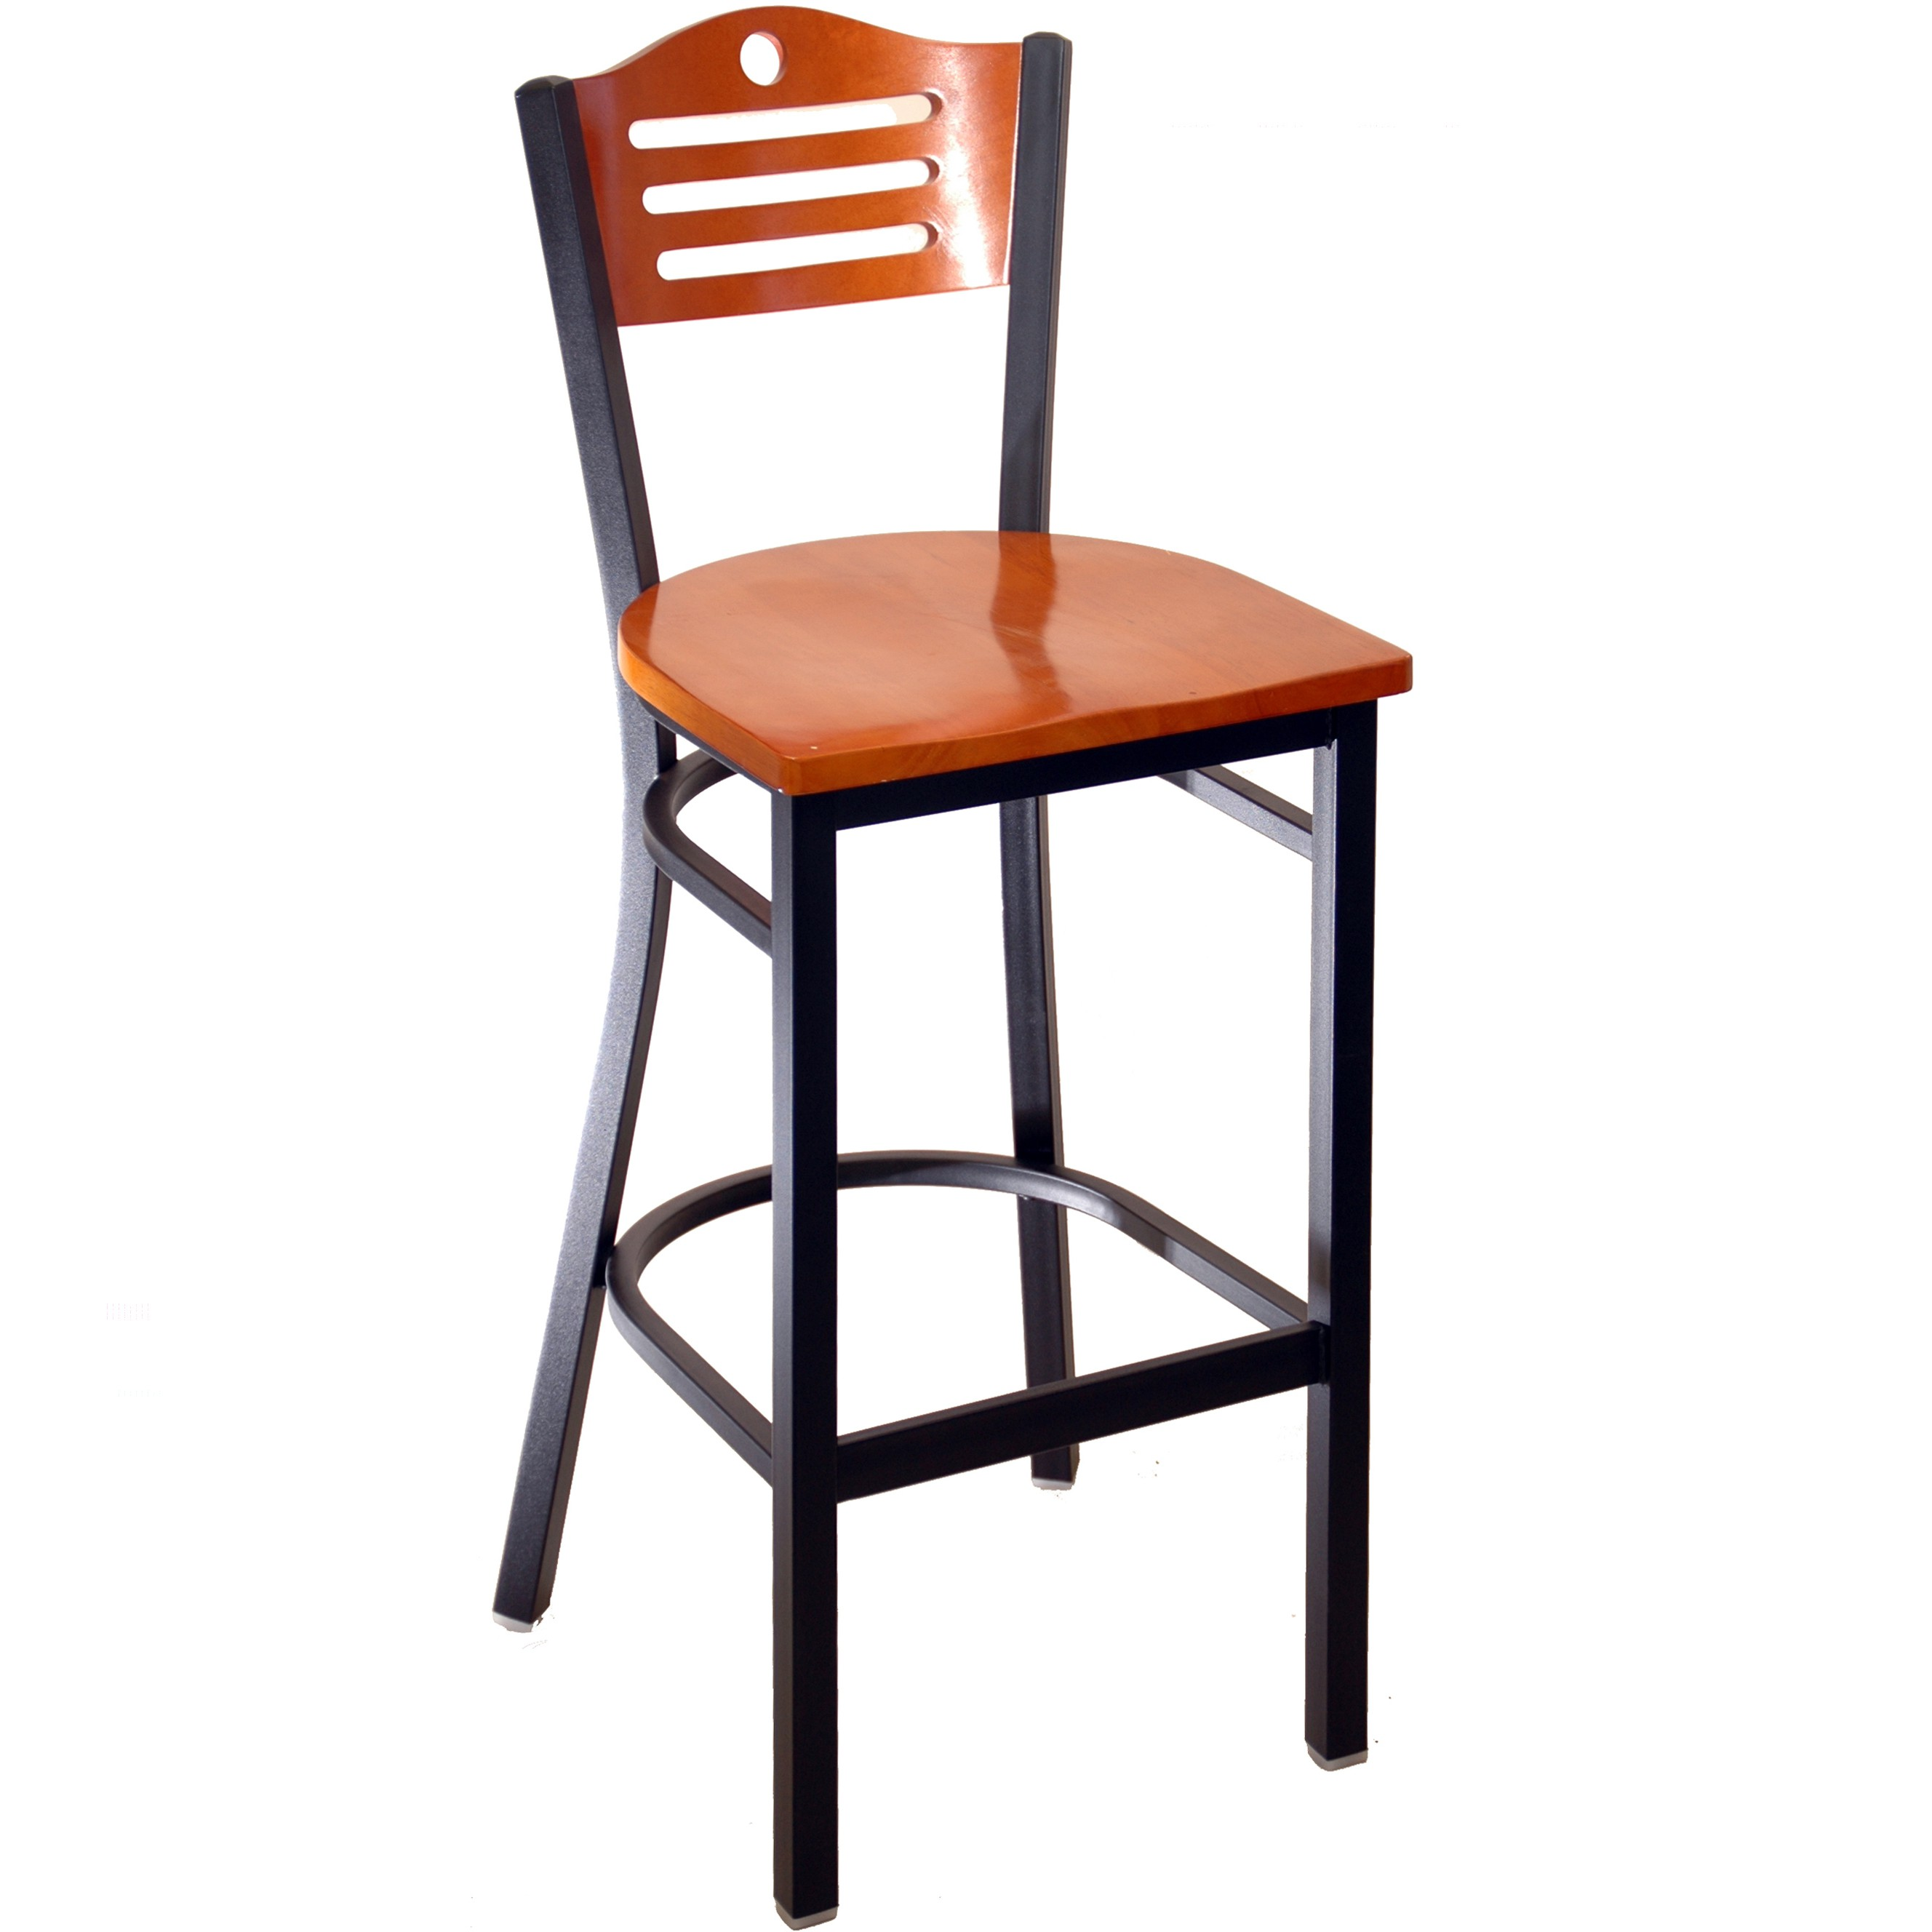 bar chairs with backs desk chair without casters interchangeable back metal stool slats and circle